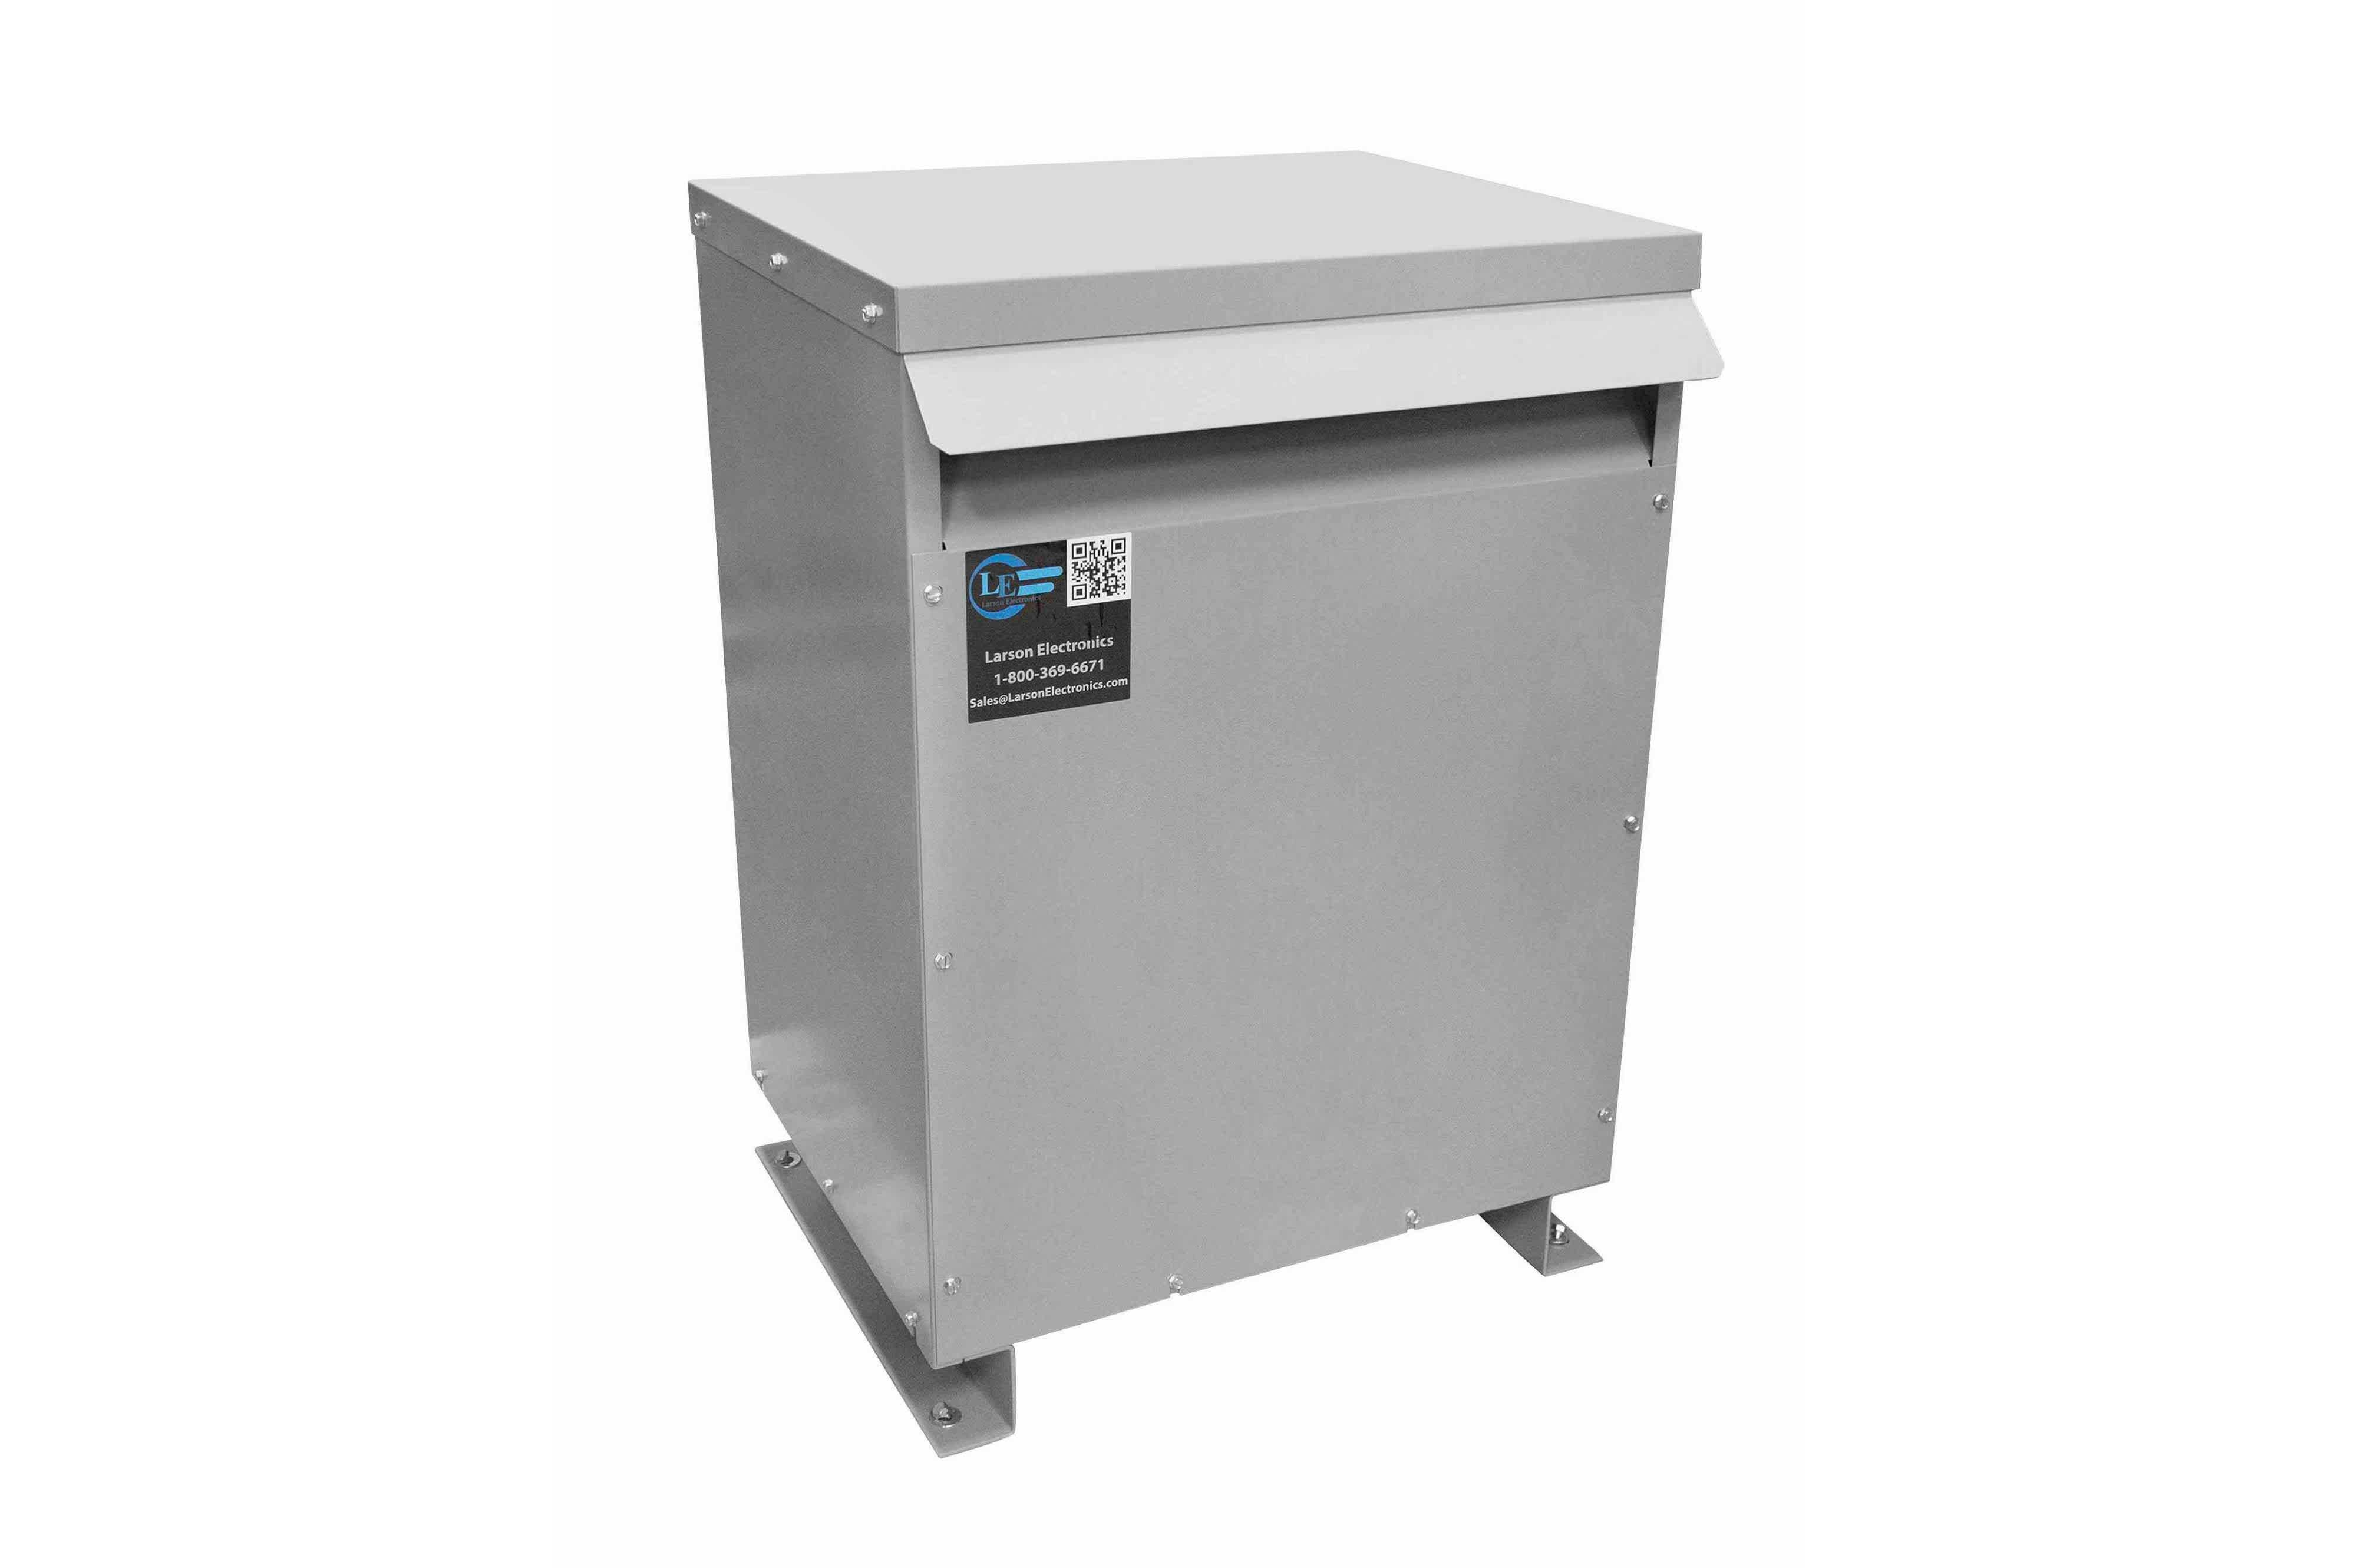 14 kVA 3PH Isolation Transformer, 600V Wye Primary, 240V/120 Delta Secondary, N3R, Ventilated, 60 Hz